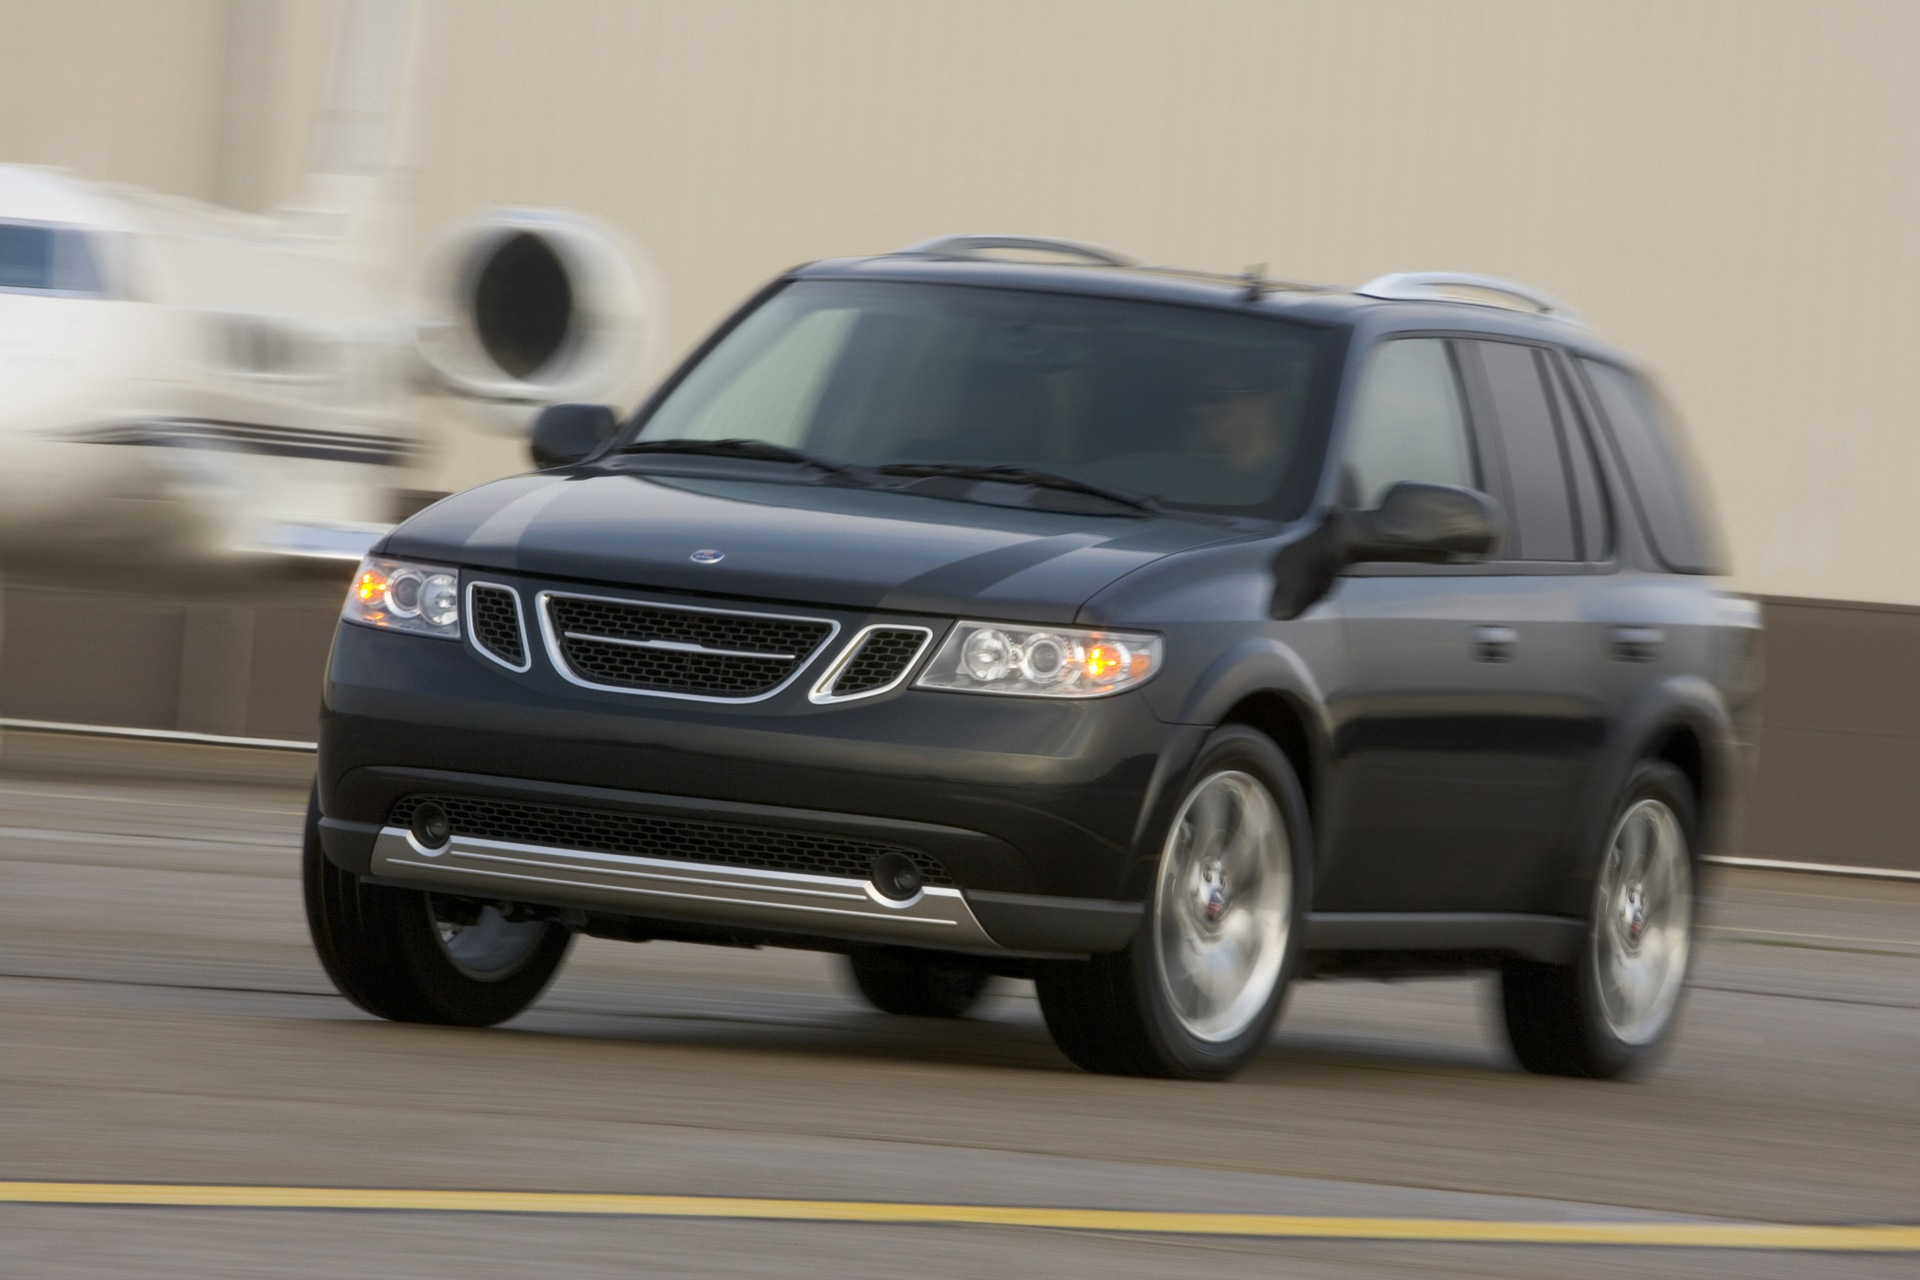 Vintage Muscle Car Wallpaper 2008 Saab 9 7x News And Information Conceptcarz Com